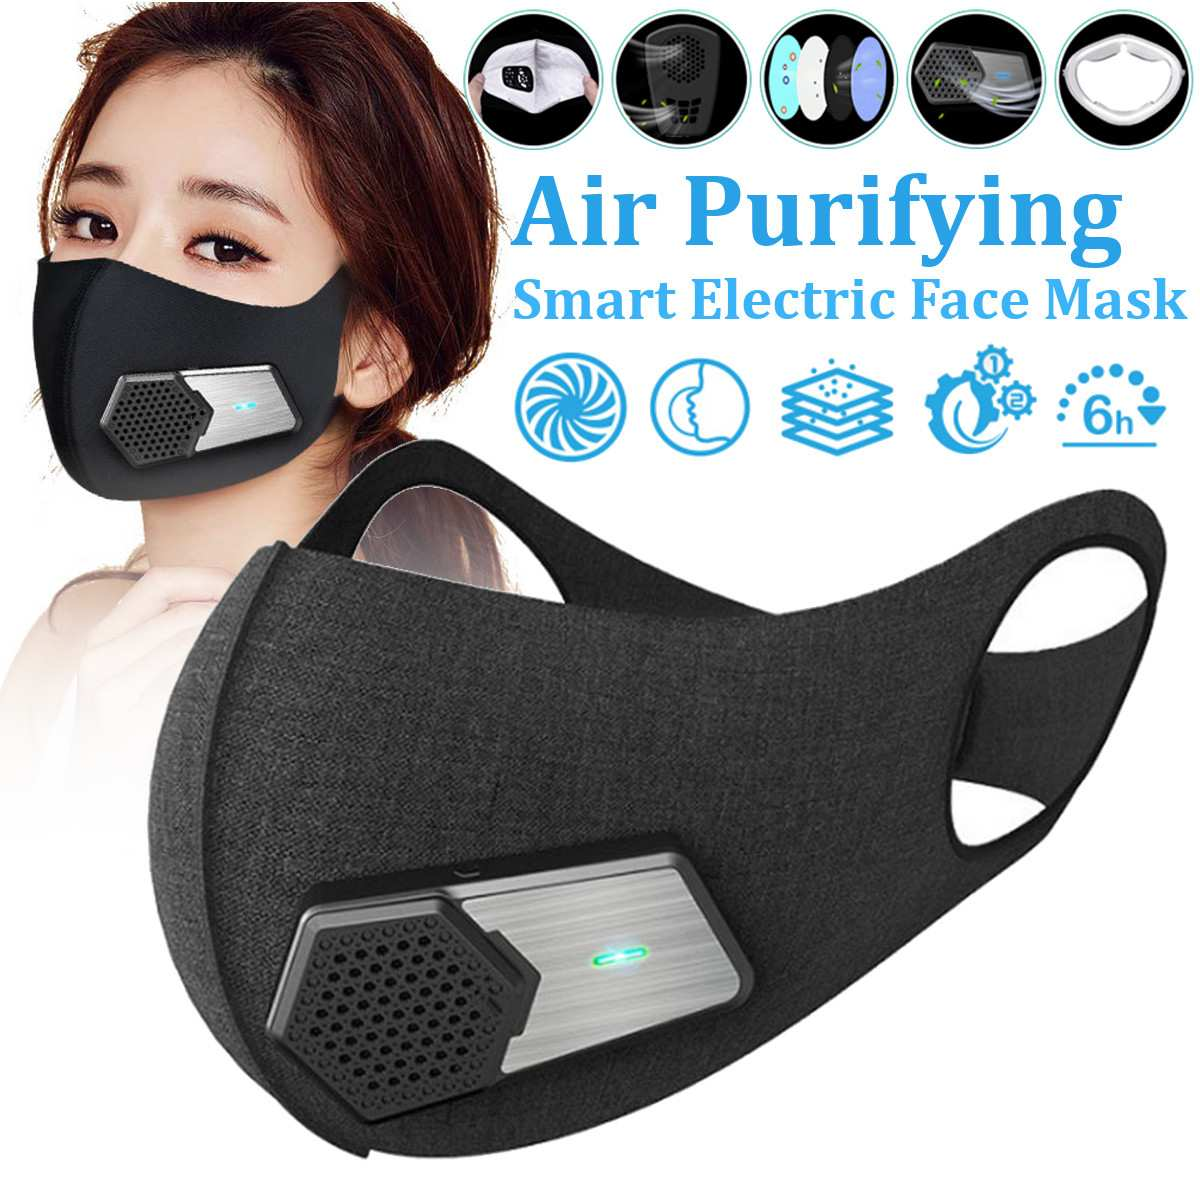 Dust-Mask Air-Purifying Safe Face PM2.5 Anti-Dust N95 Pollution Smart Electric with Breathable-Valve